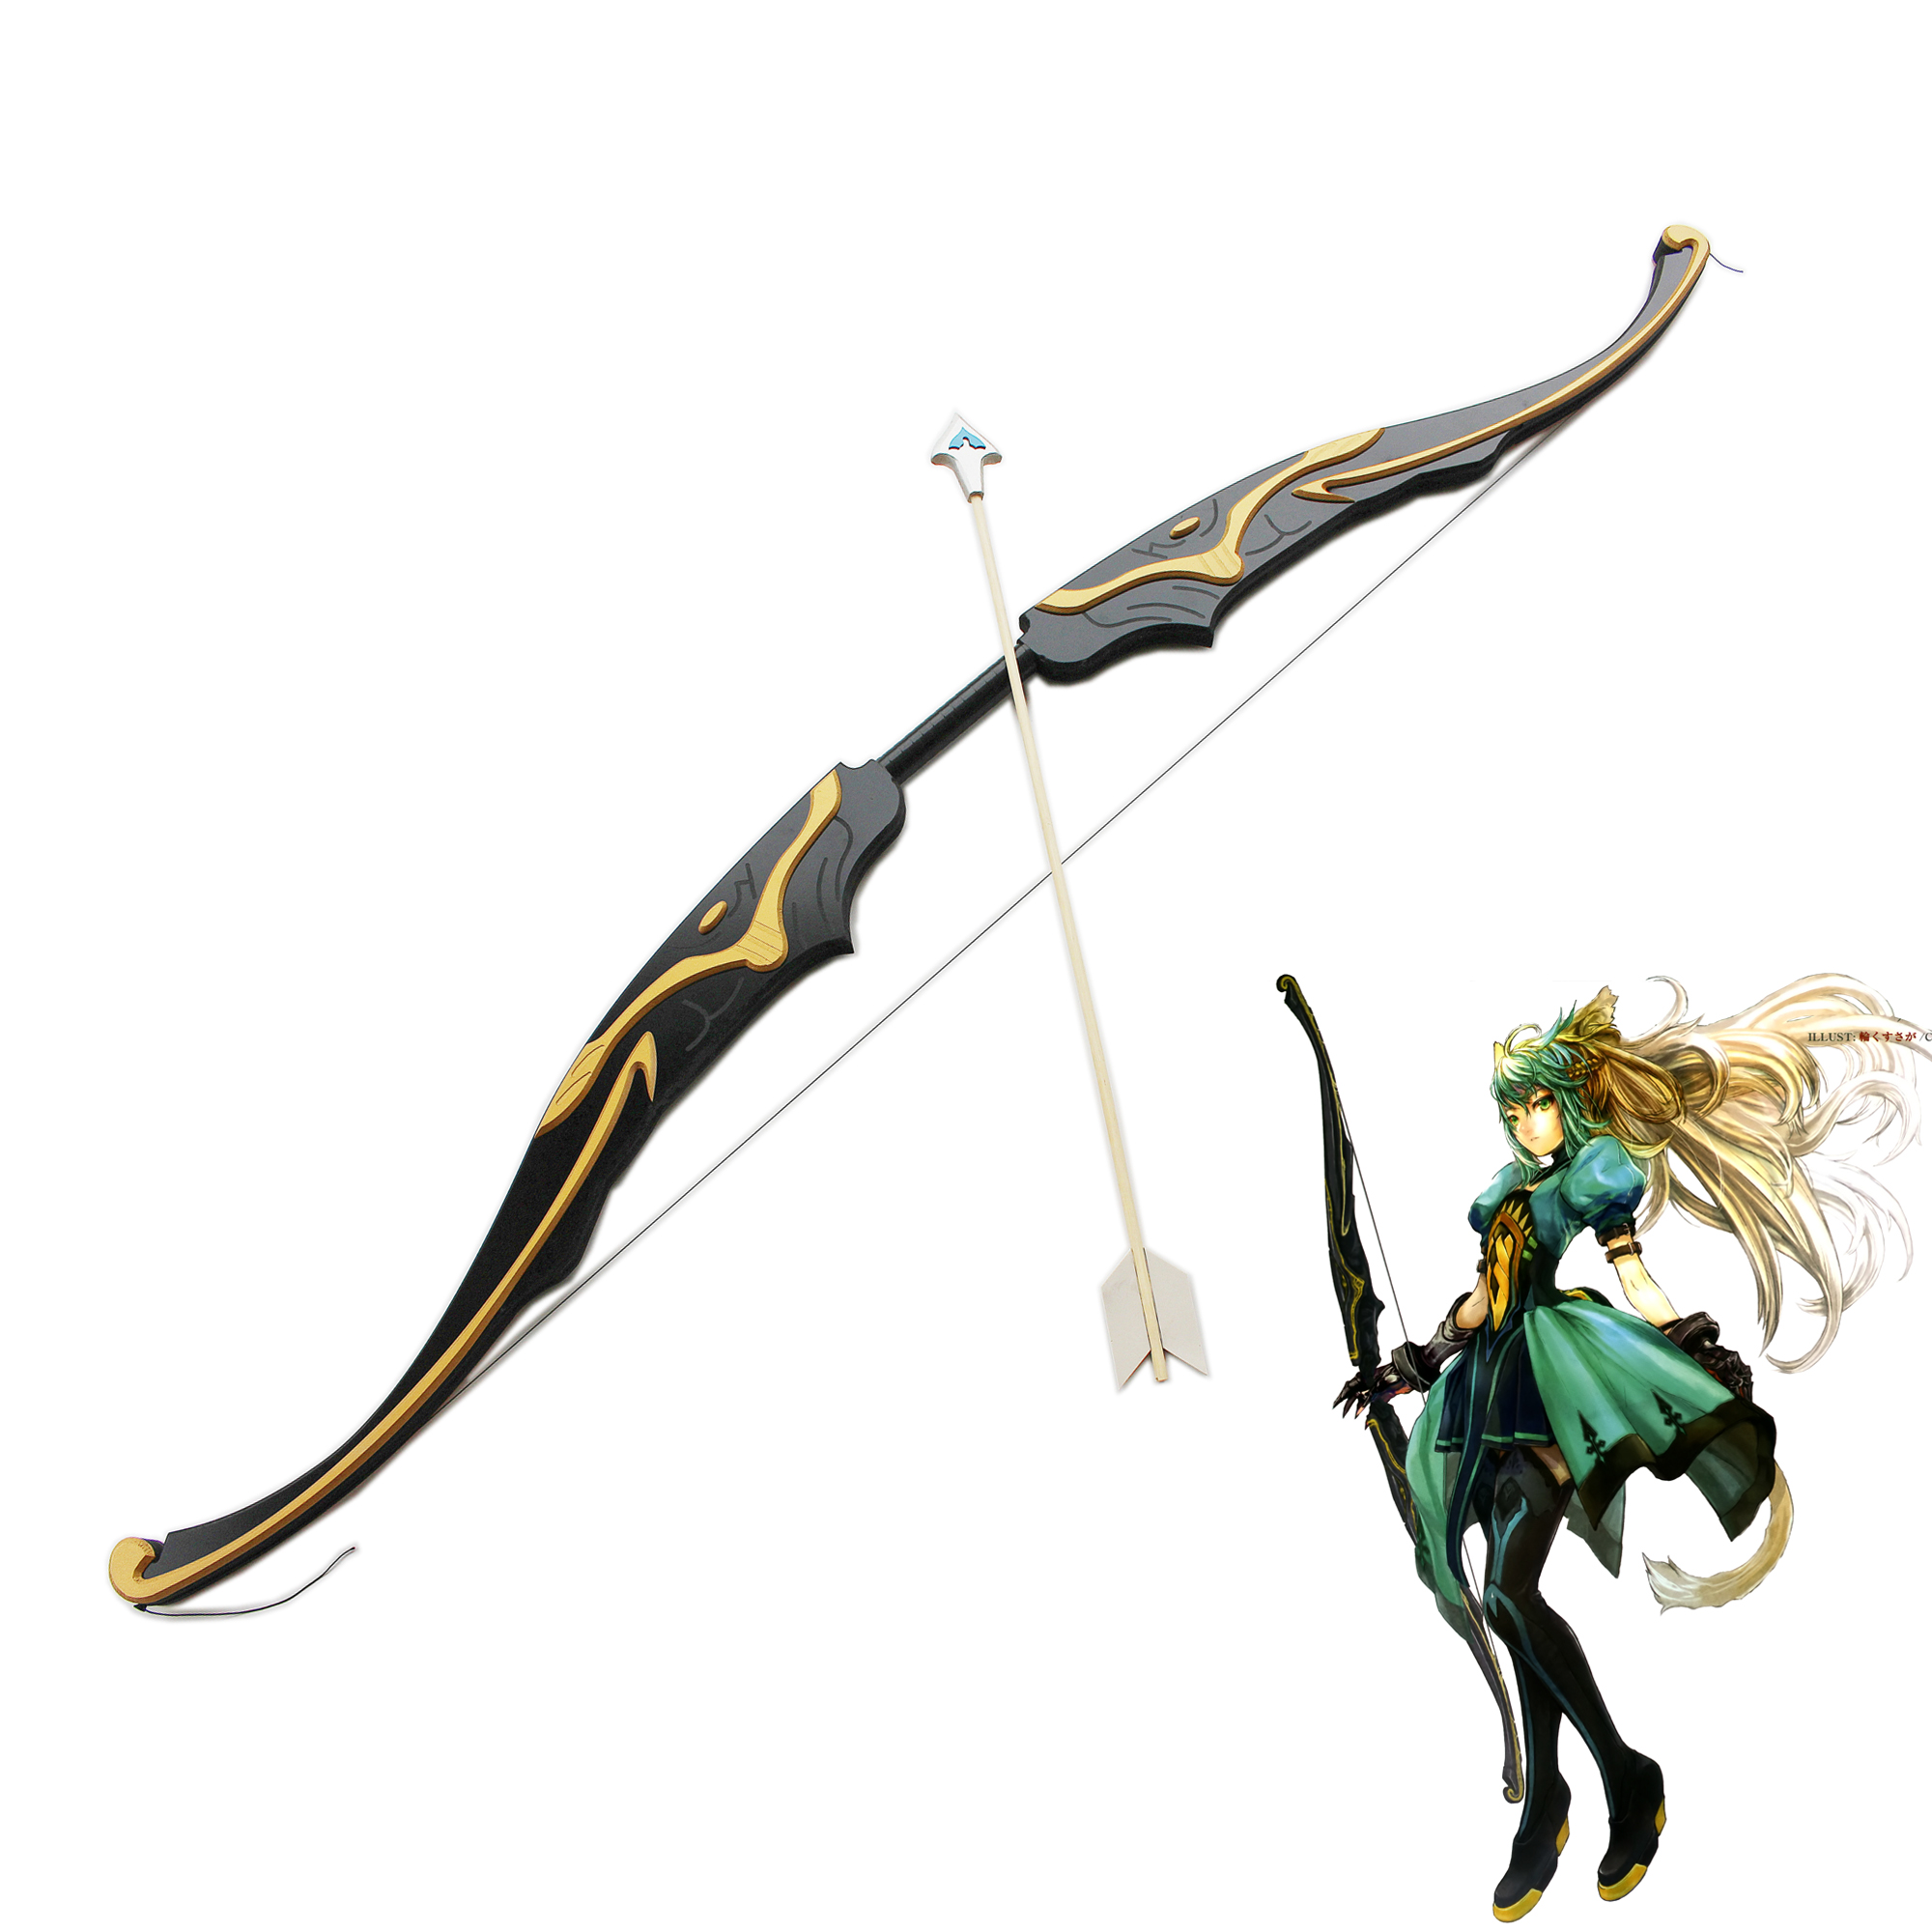 Tauropolos Fate/Grand Order Saber Atalanta Weapons Cosplay Costume Prop